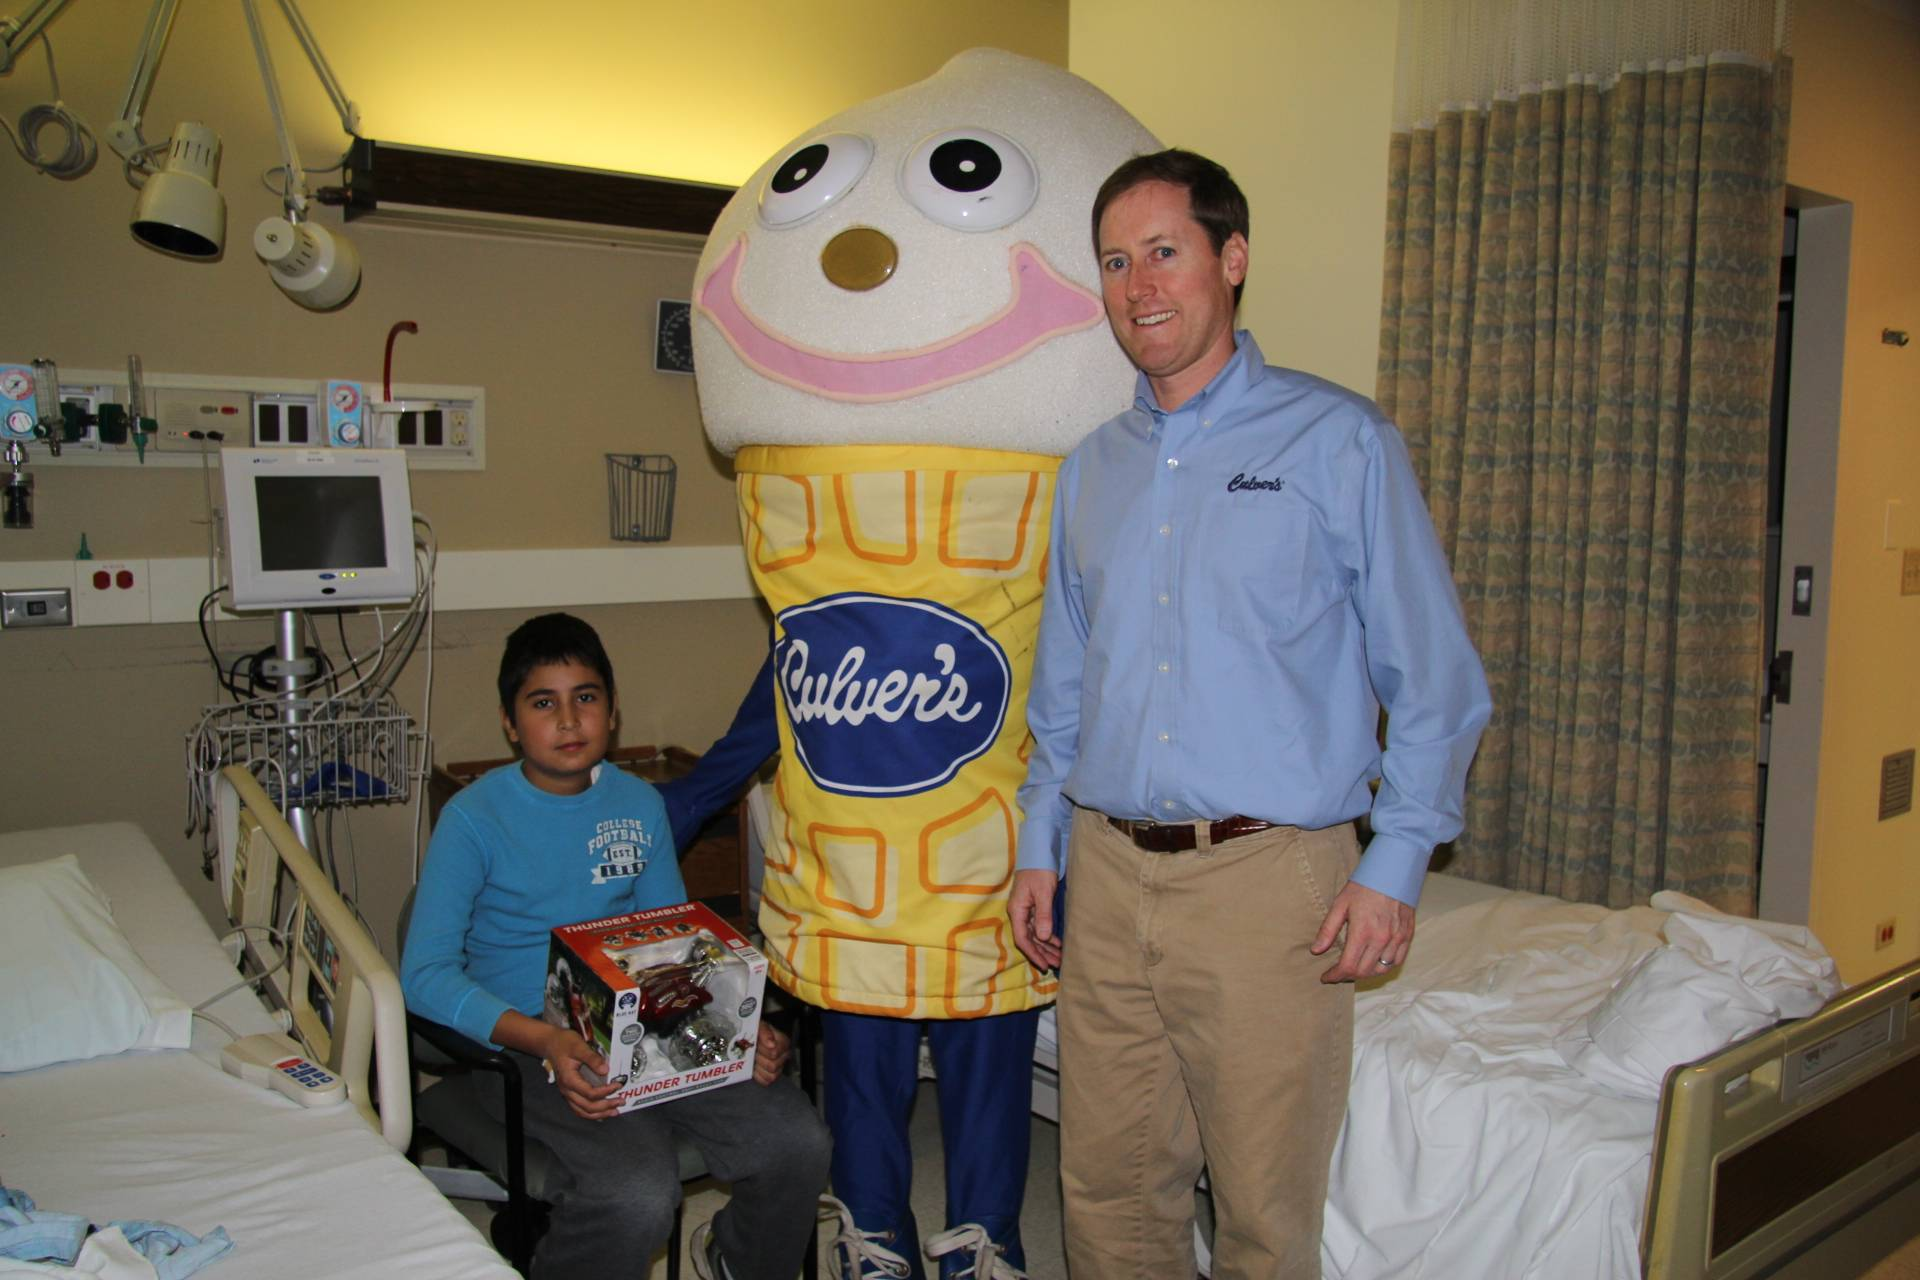 Culver's of Buffalo Grove owner Kevin Weasler helps Scoopie deliver a special toy for 11-year-old David Vargas at Northwest Community Hospital.